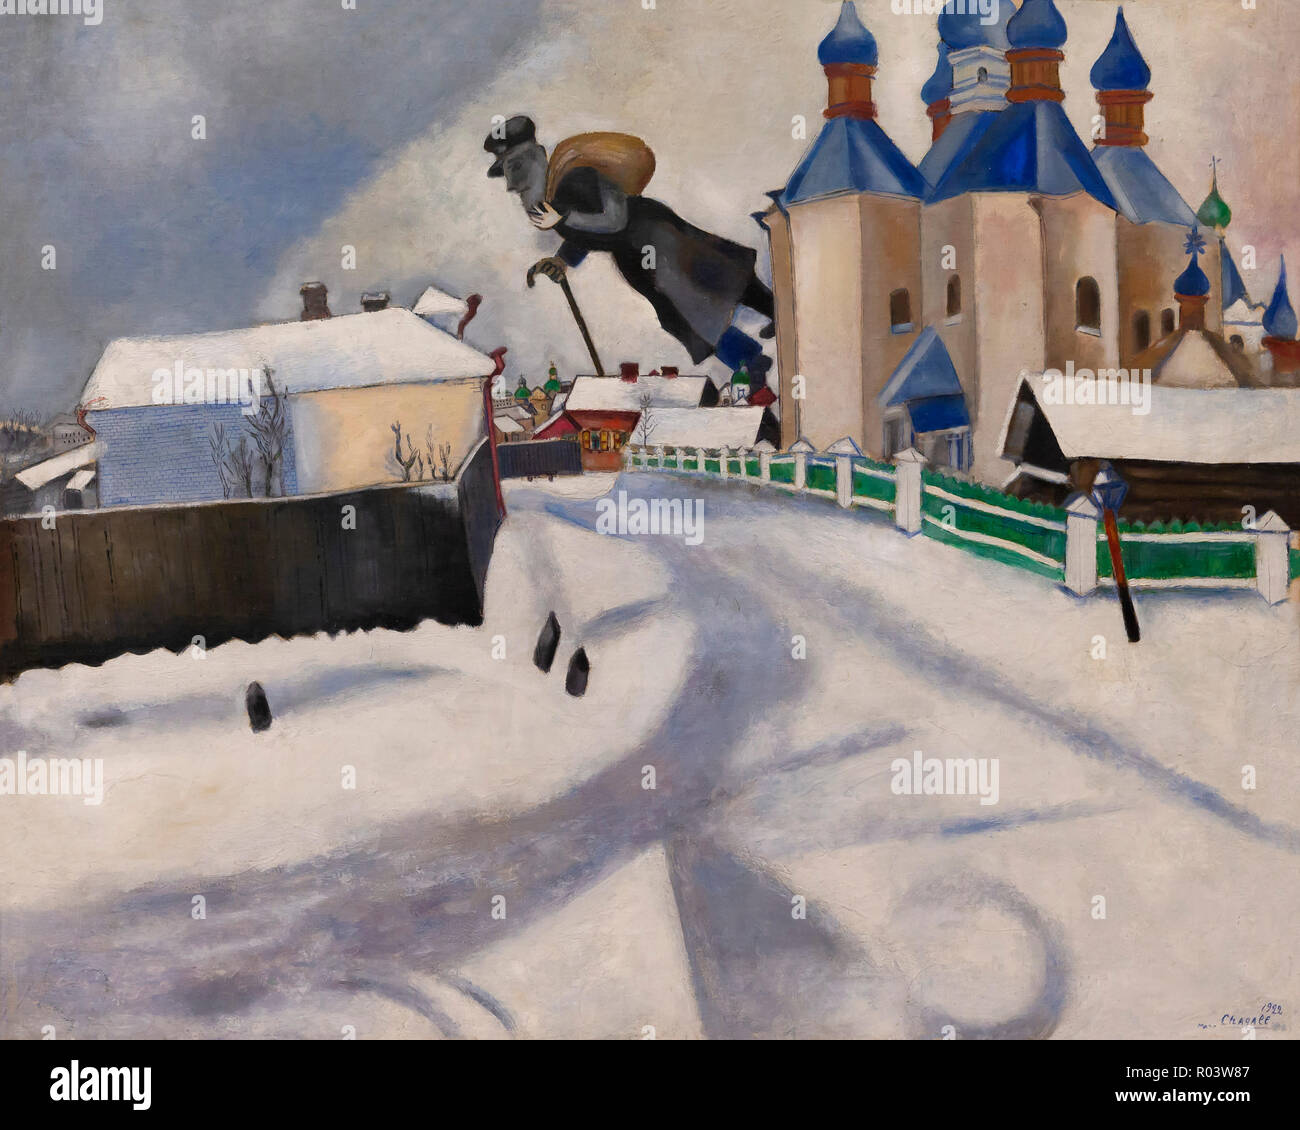 Above Vitebsk, Marc Chagall, 1922, Zurich Kunsthaus, Zurich, Switzerland, Europe - Stock Image